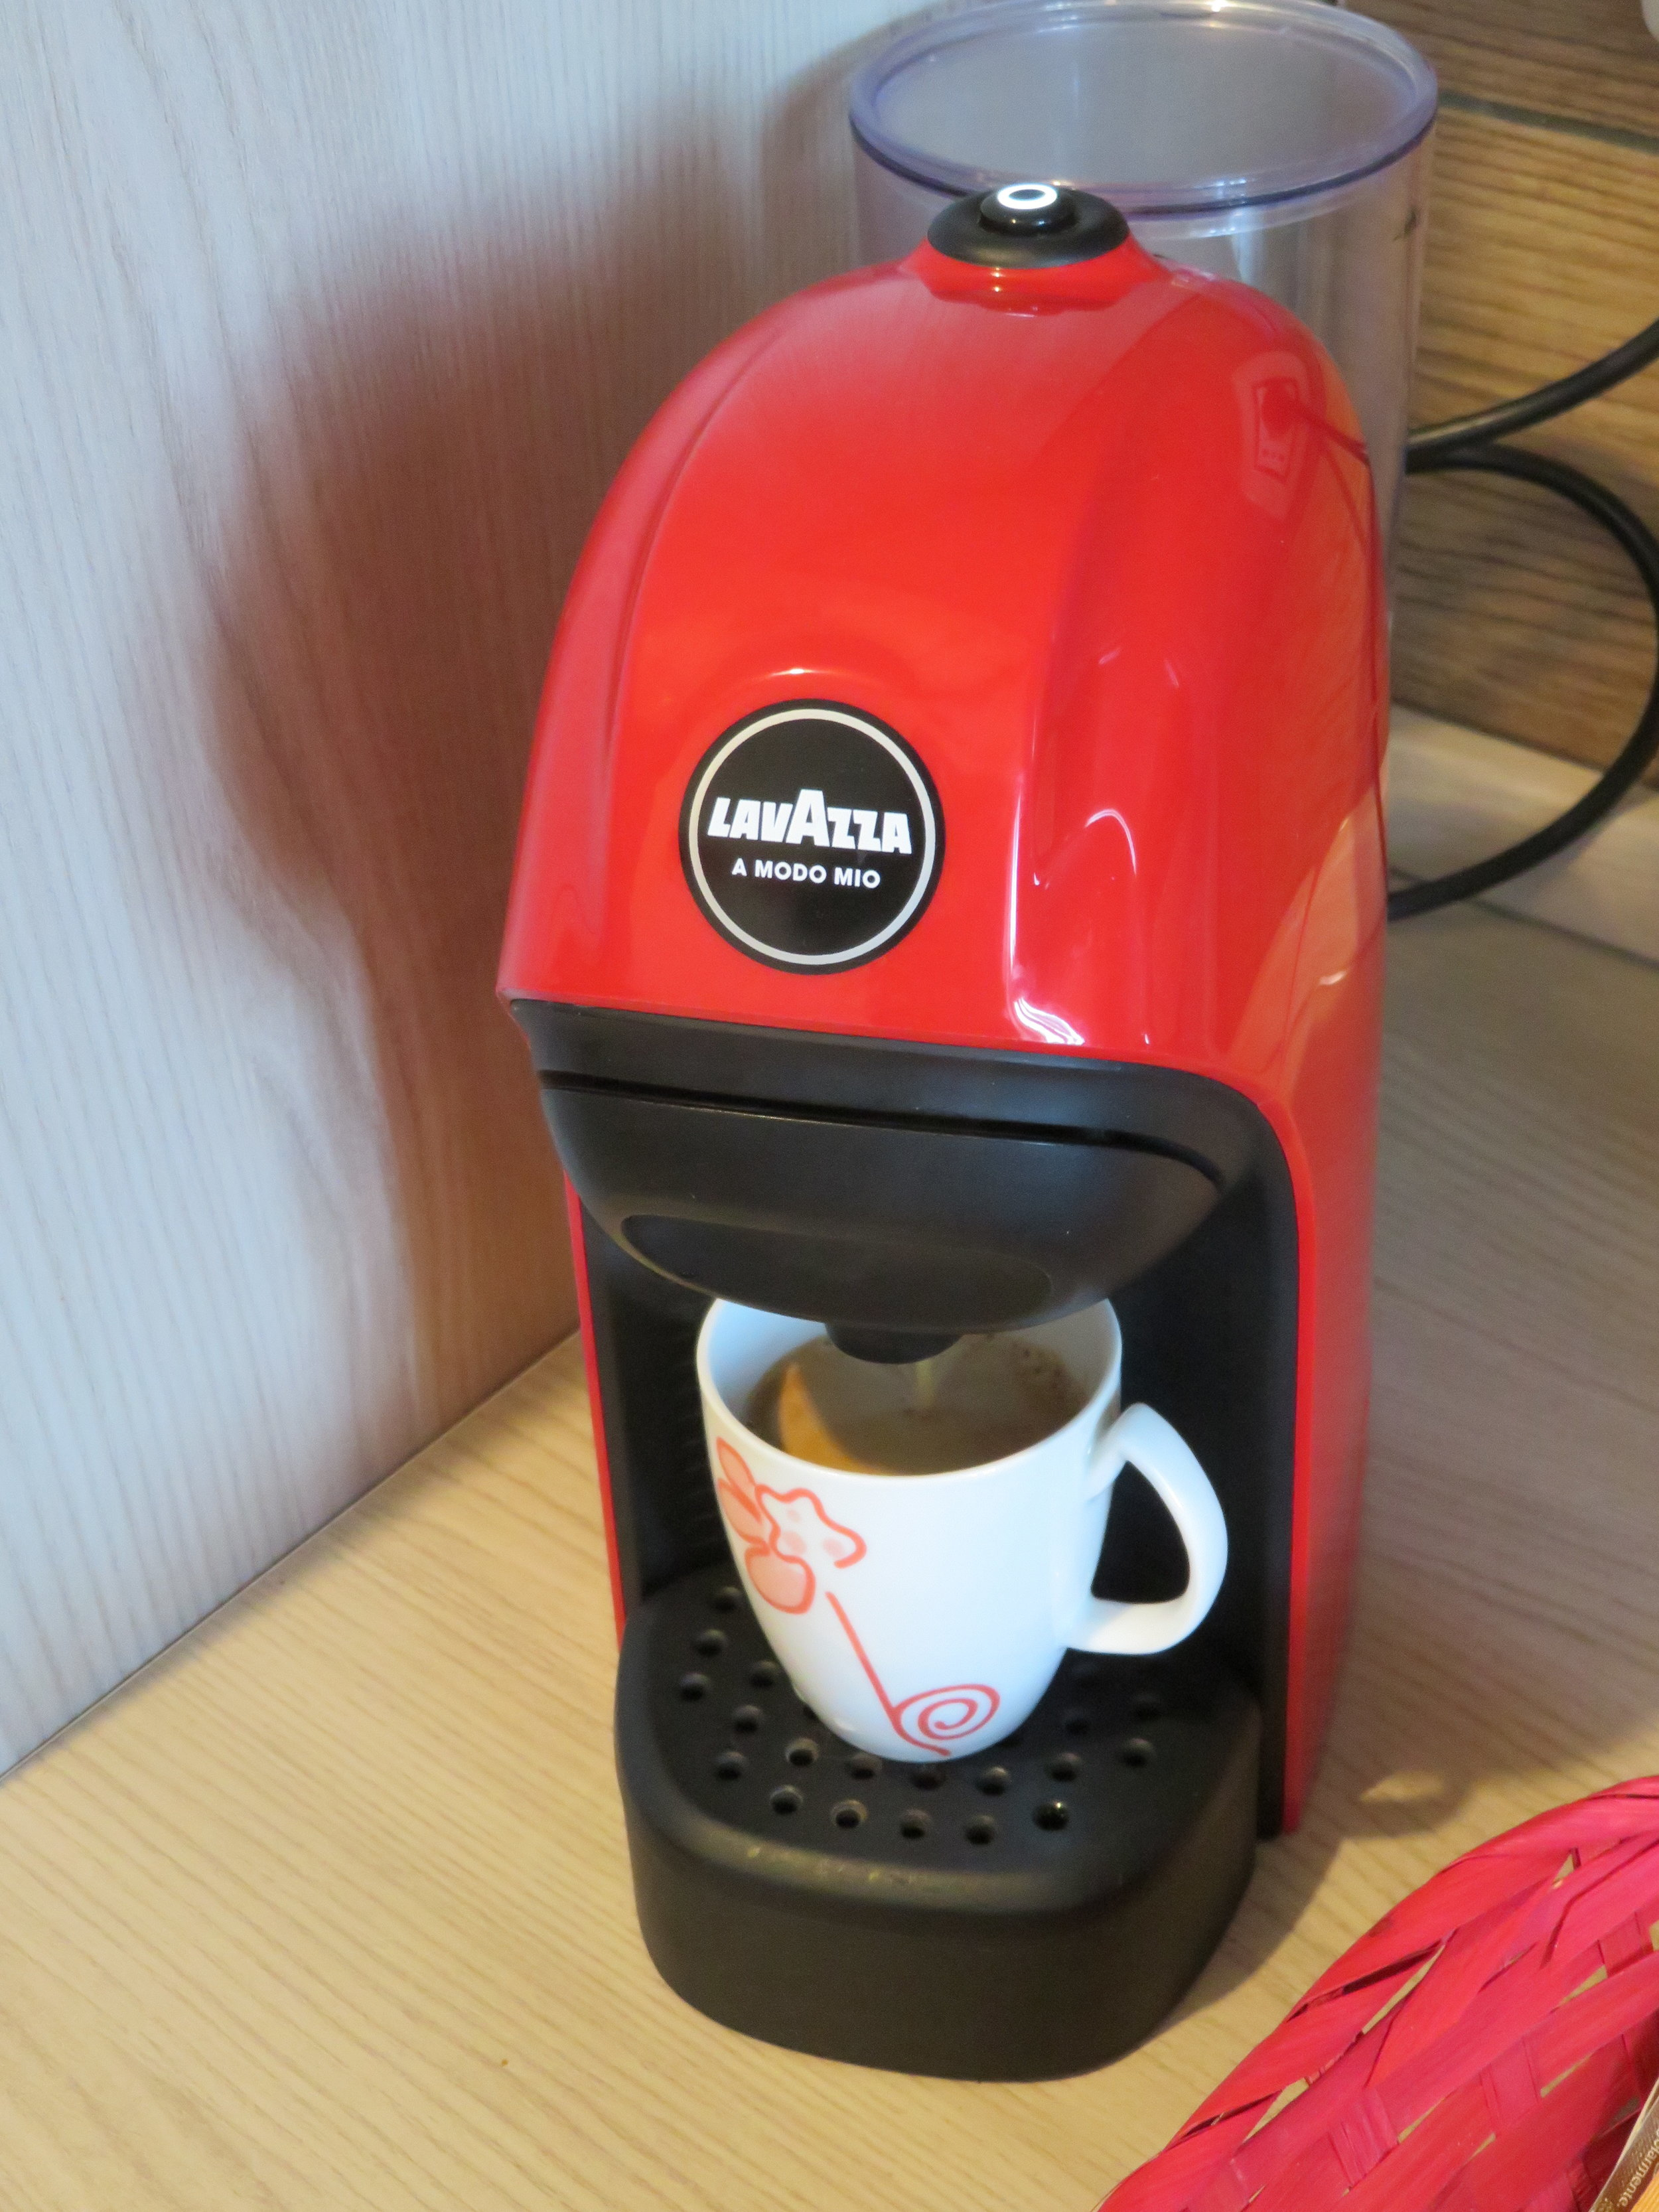 A hotel room coffeemaker